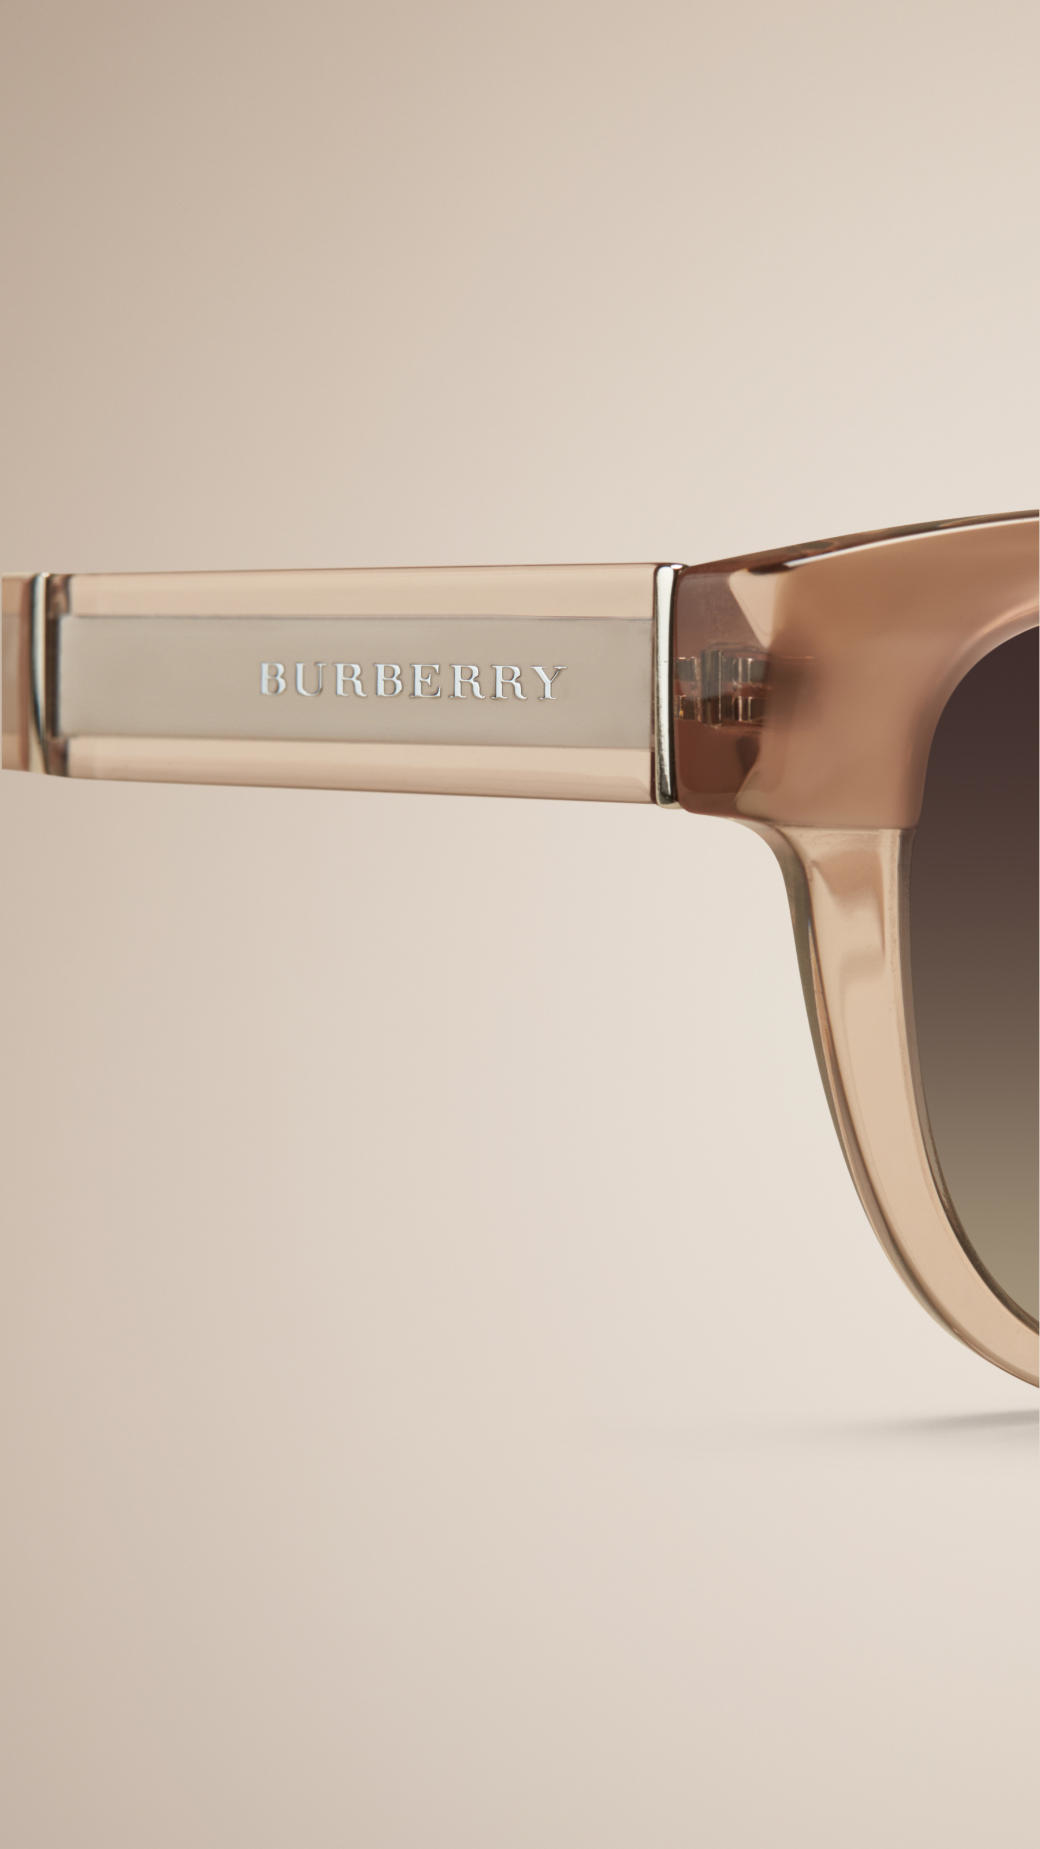 953a10330527 Burberry Cat-eye Sunglasses Nude in Natural - Lyst